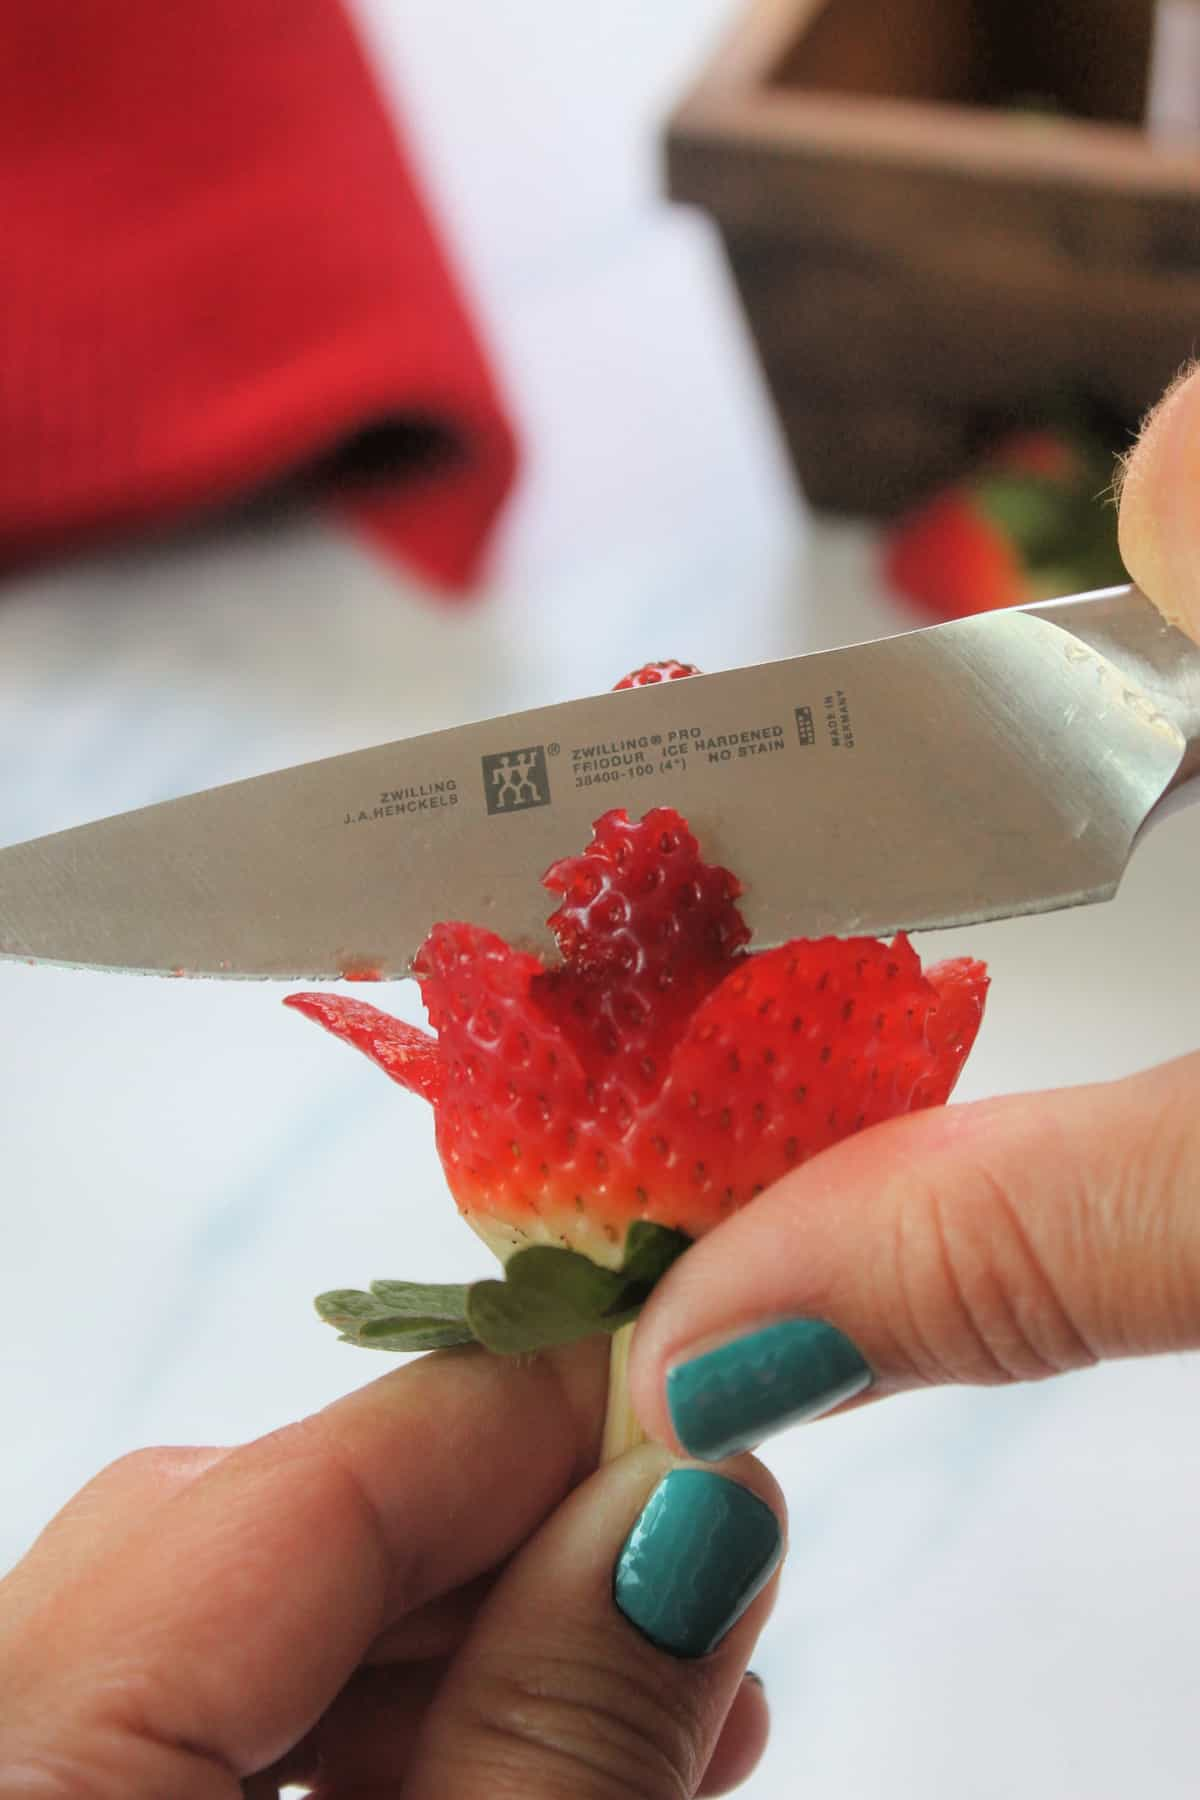 Process shot of cutting second tier of petals on strawberry rose.